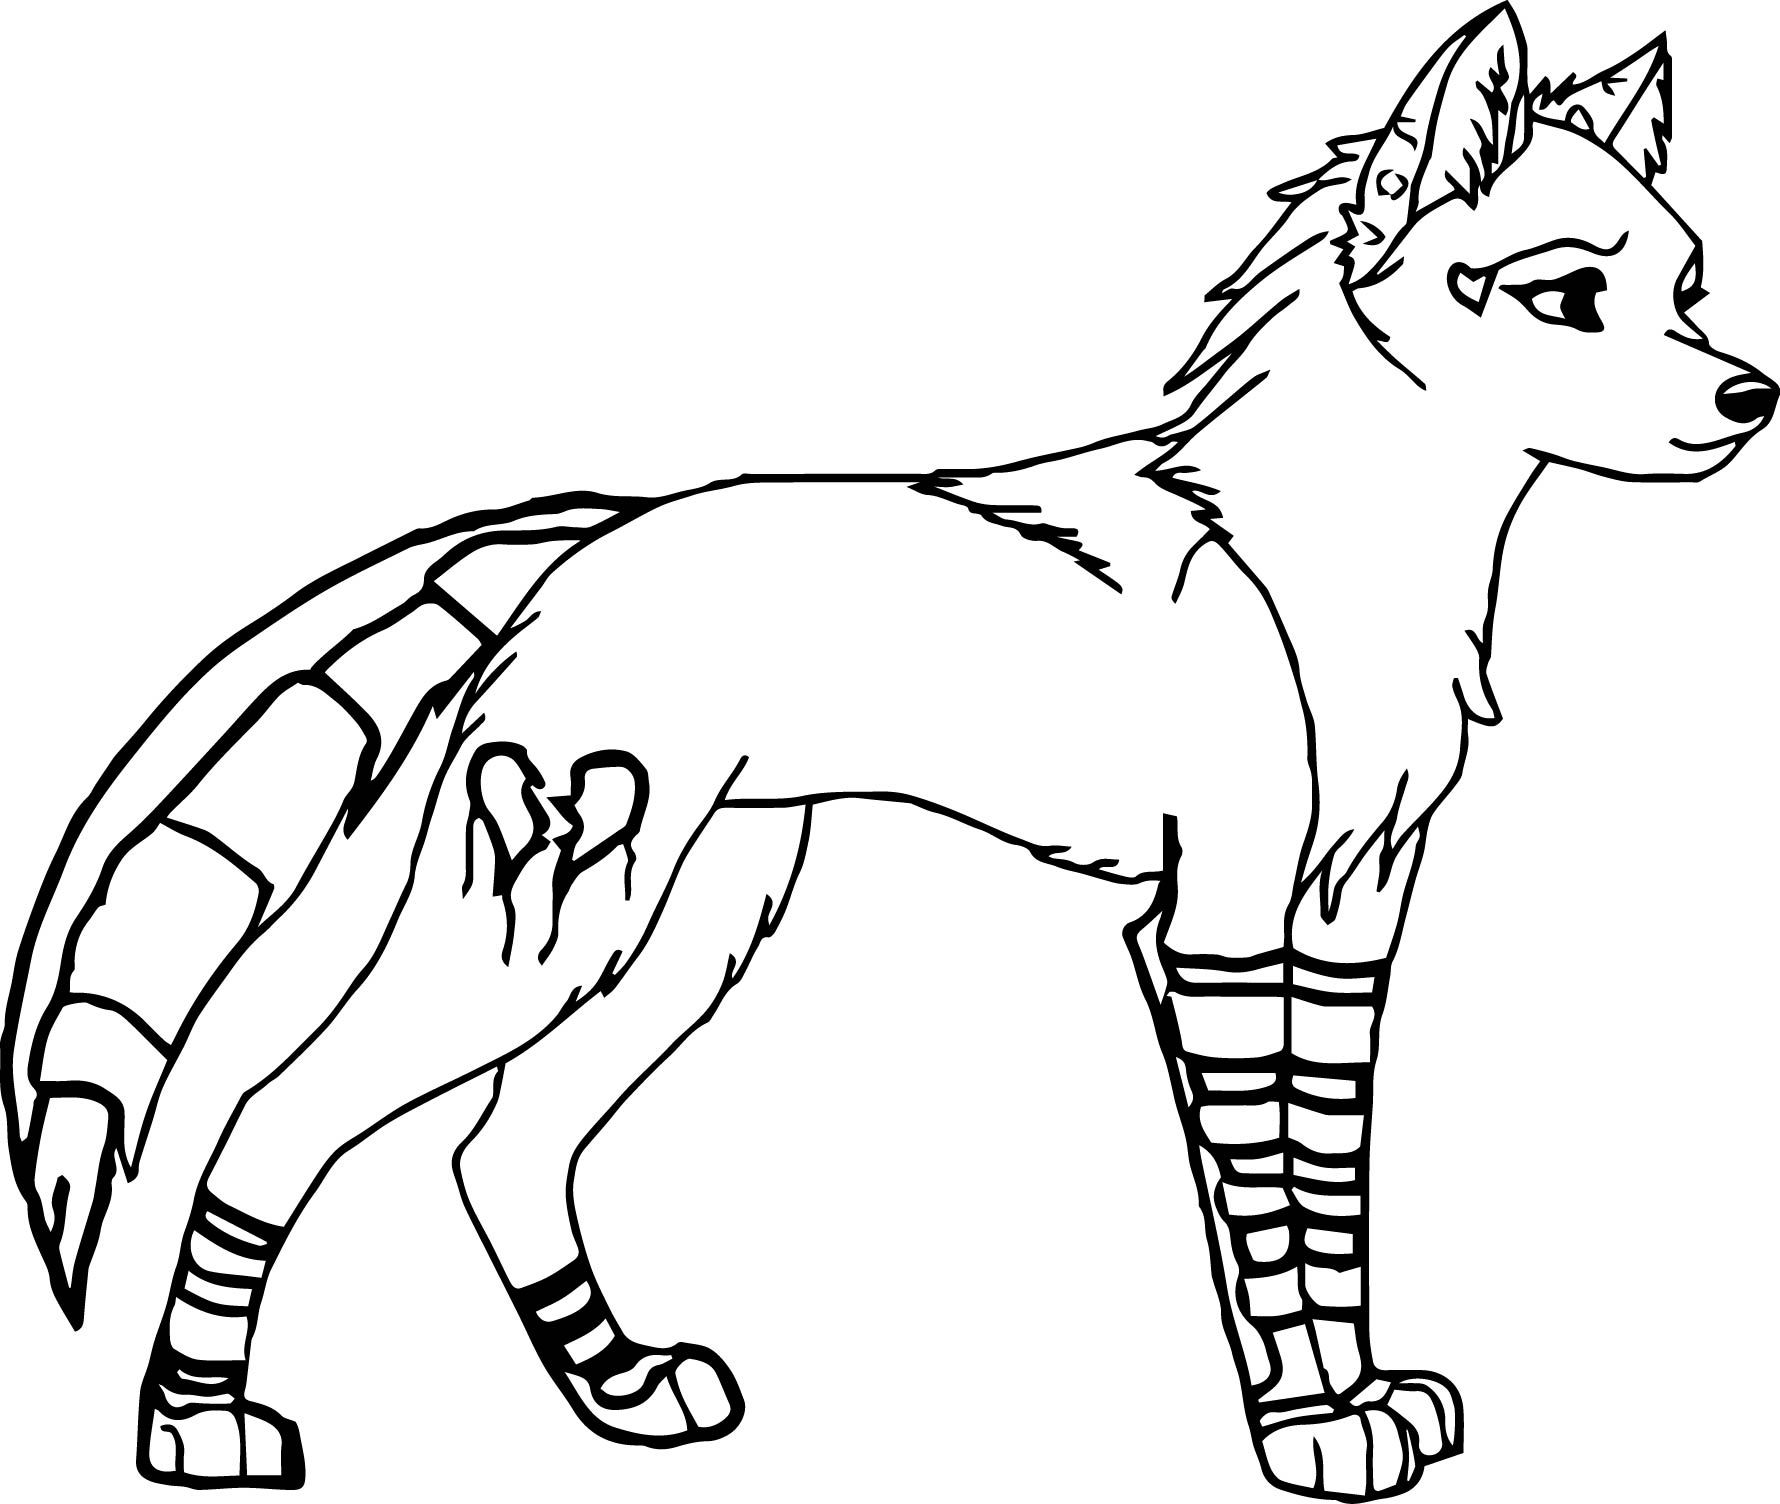 wolves coloring pages - photo#21